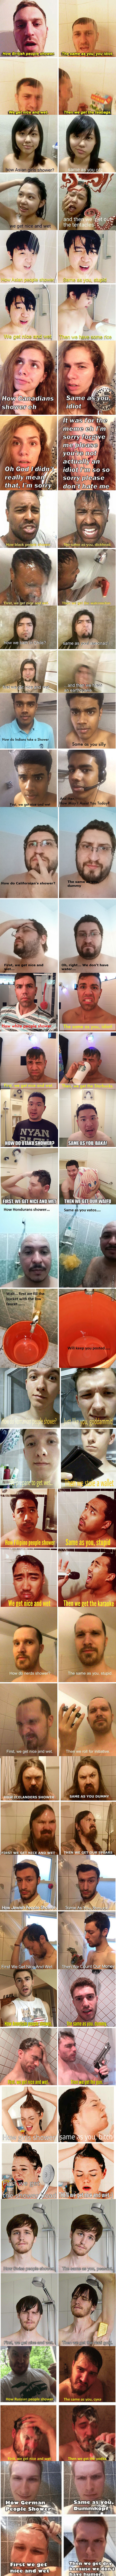 How Ppl Shower Compilation, Coz Why Not  (Long Post Warning)